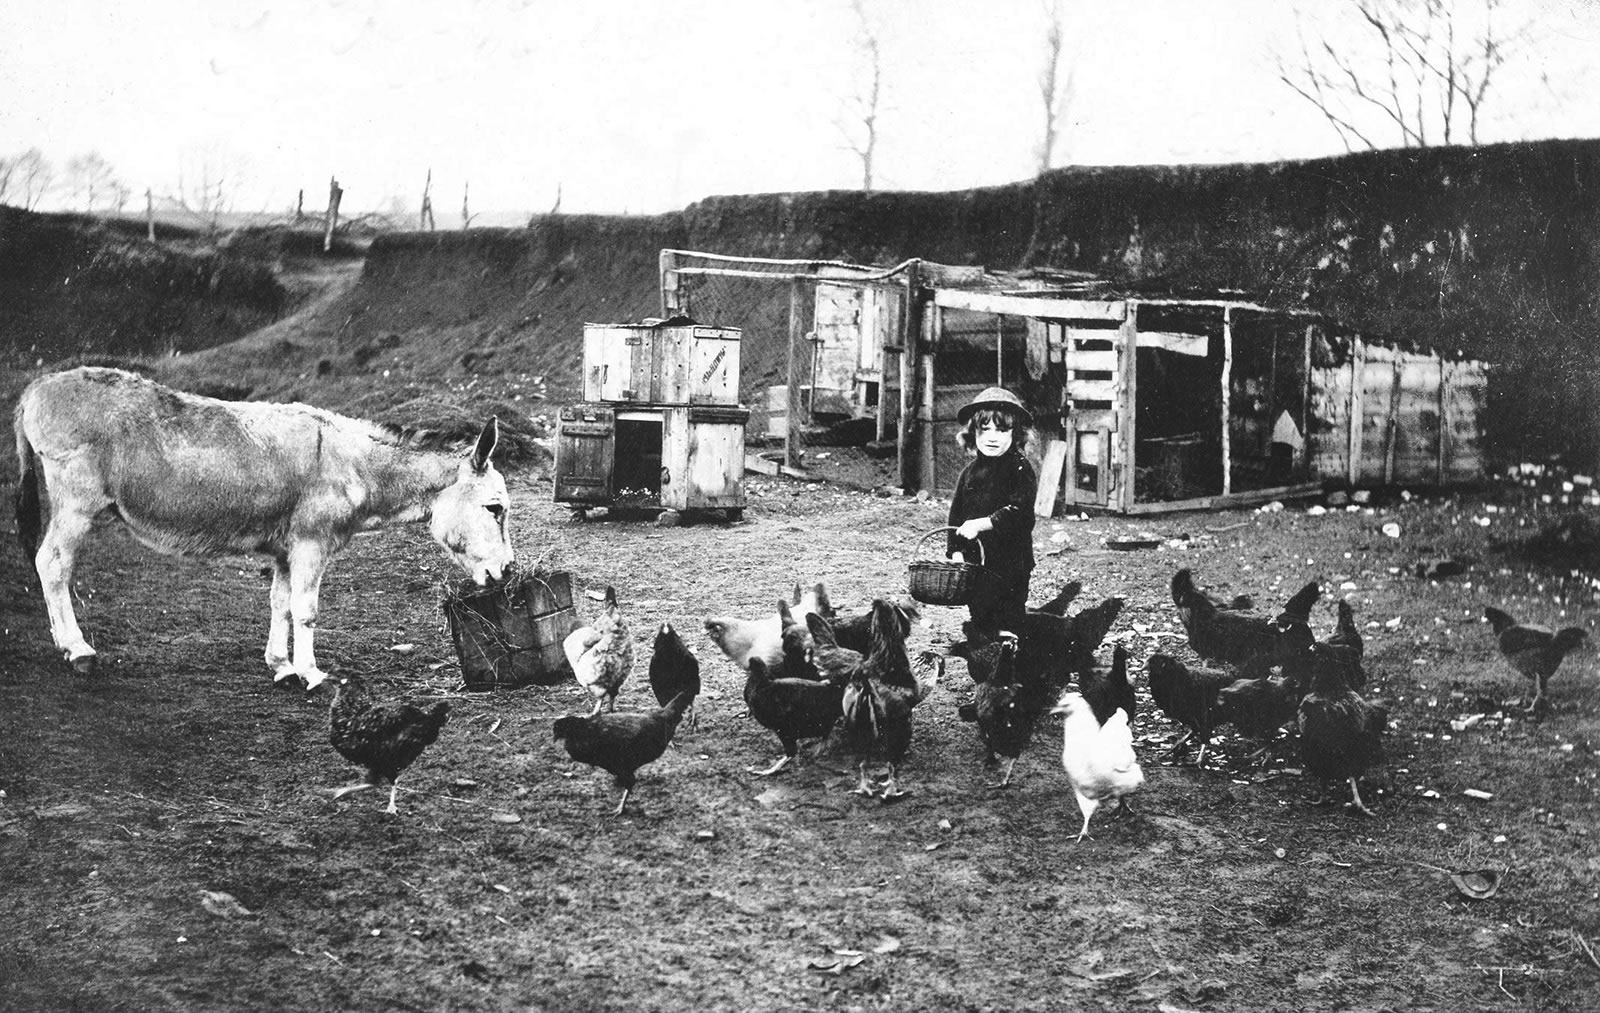 Image of a black and white photograph of a young boy feeding a group of chickens in a farmyard